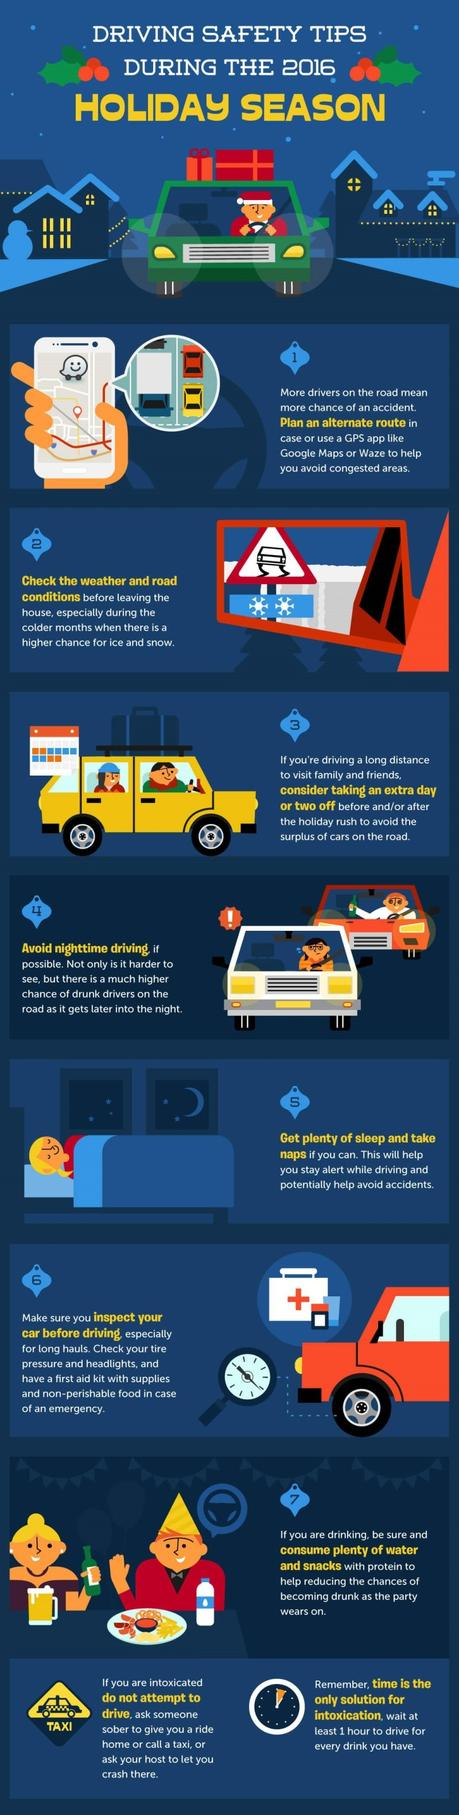 Driving Safety Tips During Holiday Season [Infographic]